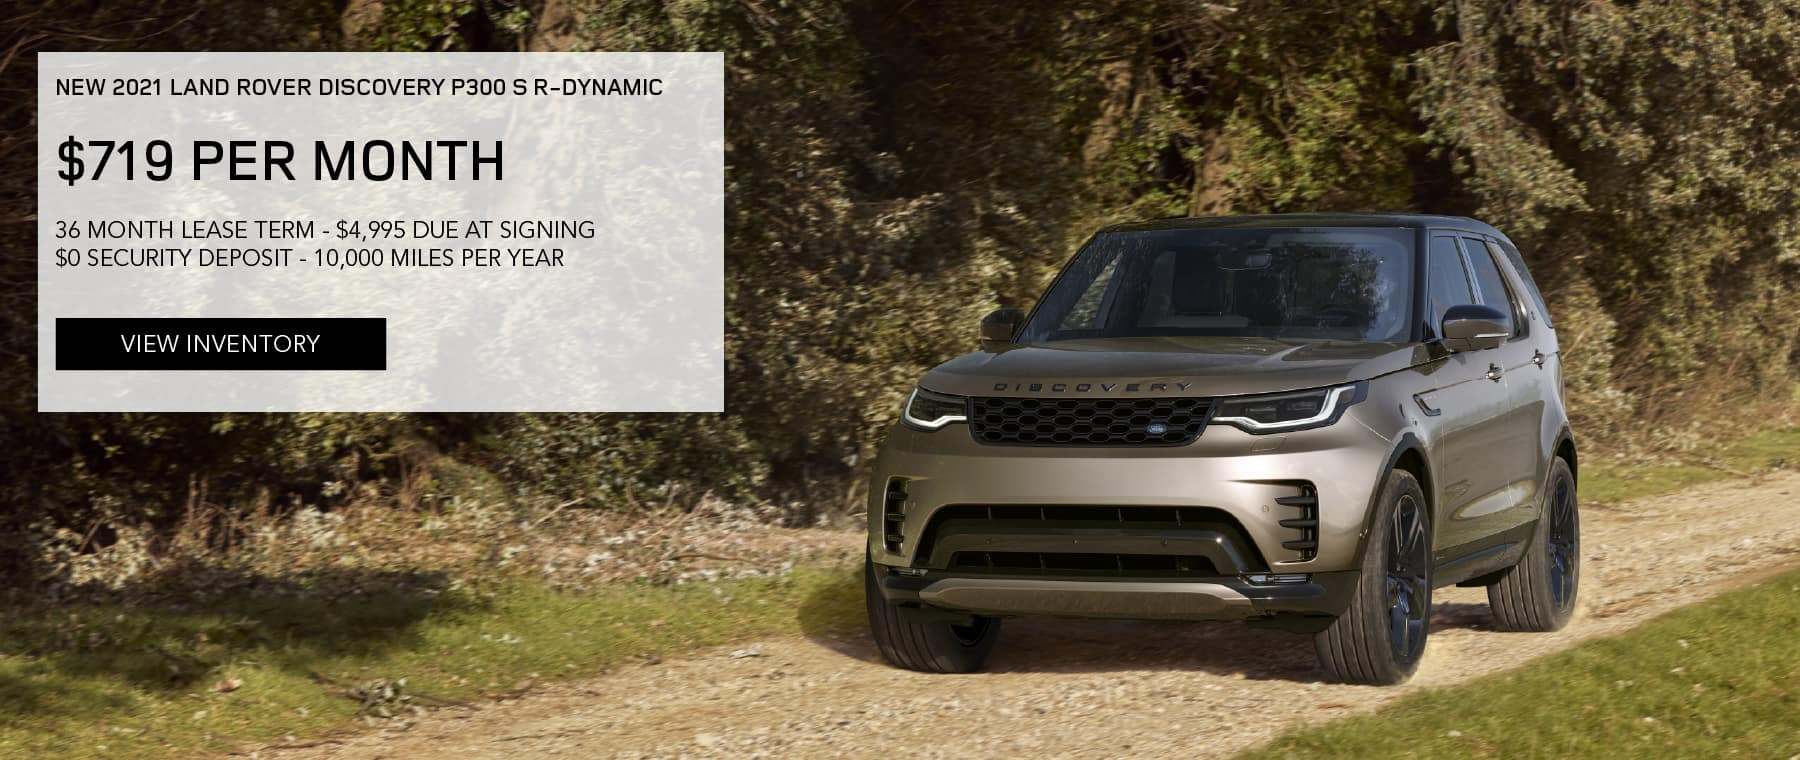 NEW 2021 LAND ROVER DISCOVERY P300 S R-DYNAMIC. $719 PER MONTH. 36 MONTH LEASE TERM. $4,995 CASH DUE AT SIGNING. $0 SECURITY DEPOSIT. 10,000 MILES PER YEAR. EXCLUDES RETAILER FEES, TAXES, TITLE AND REGISTRATION FEES, PROCESSING FEE AND ANY EMISSION TESTING CHARGE. ENDS 6/30/2021. VIEW INVENTORY. BROWN LAND ROVER DISCOVERY DRIVING DOWN DIRT ROAD.